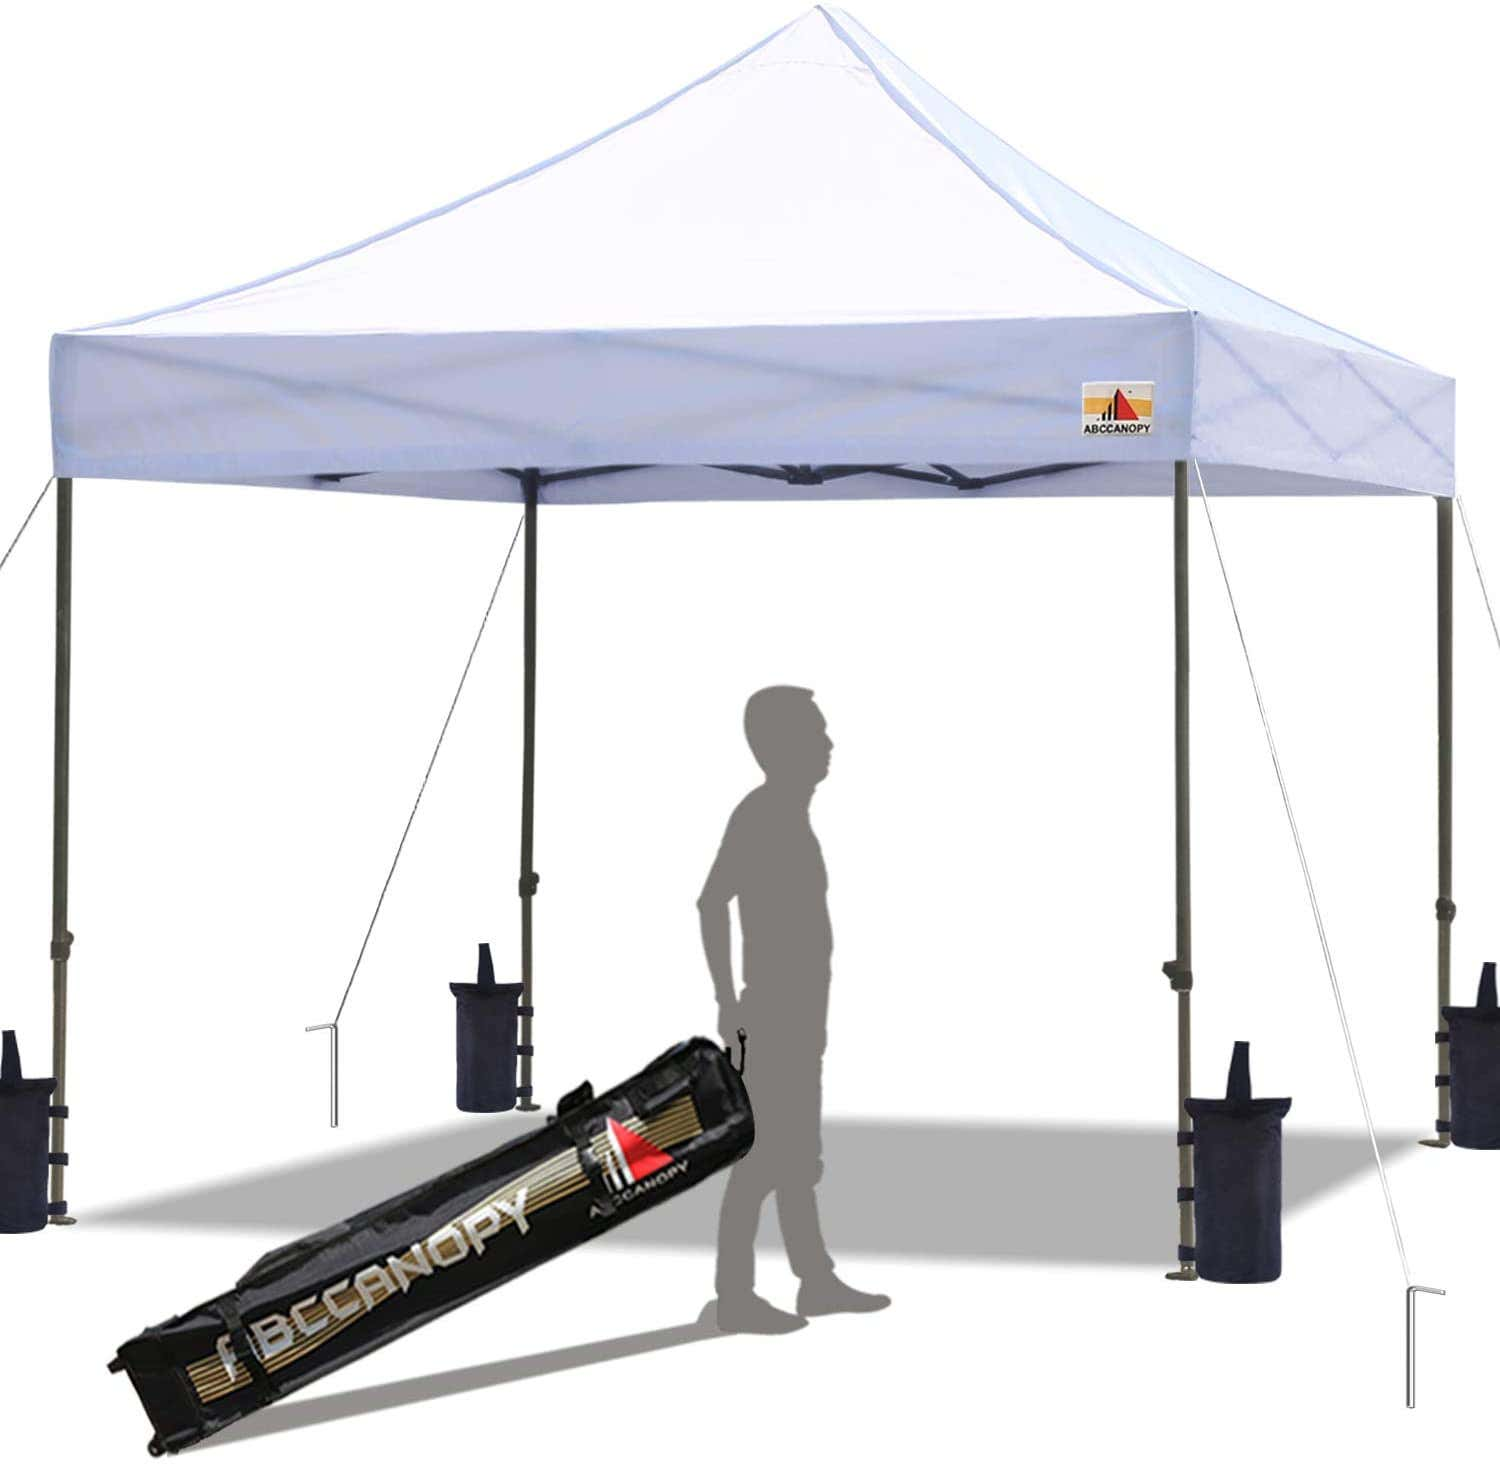 3 Best Canopy Tents 2020 The Drive